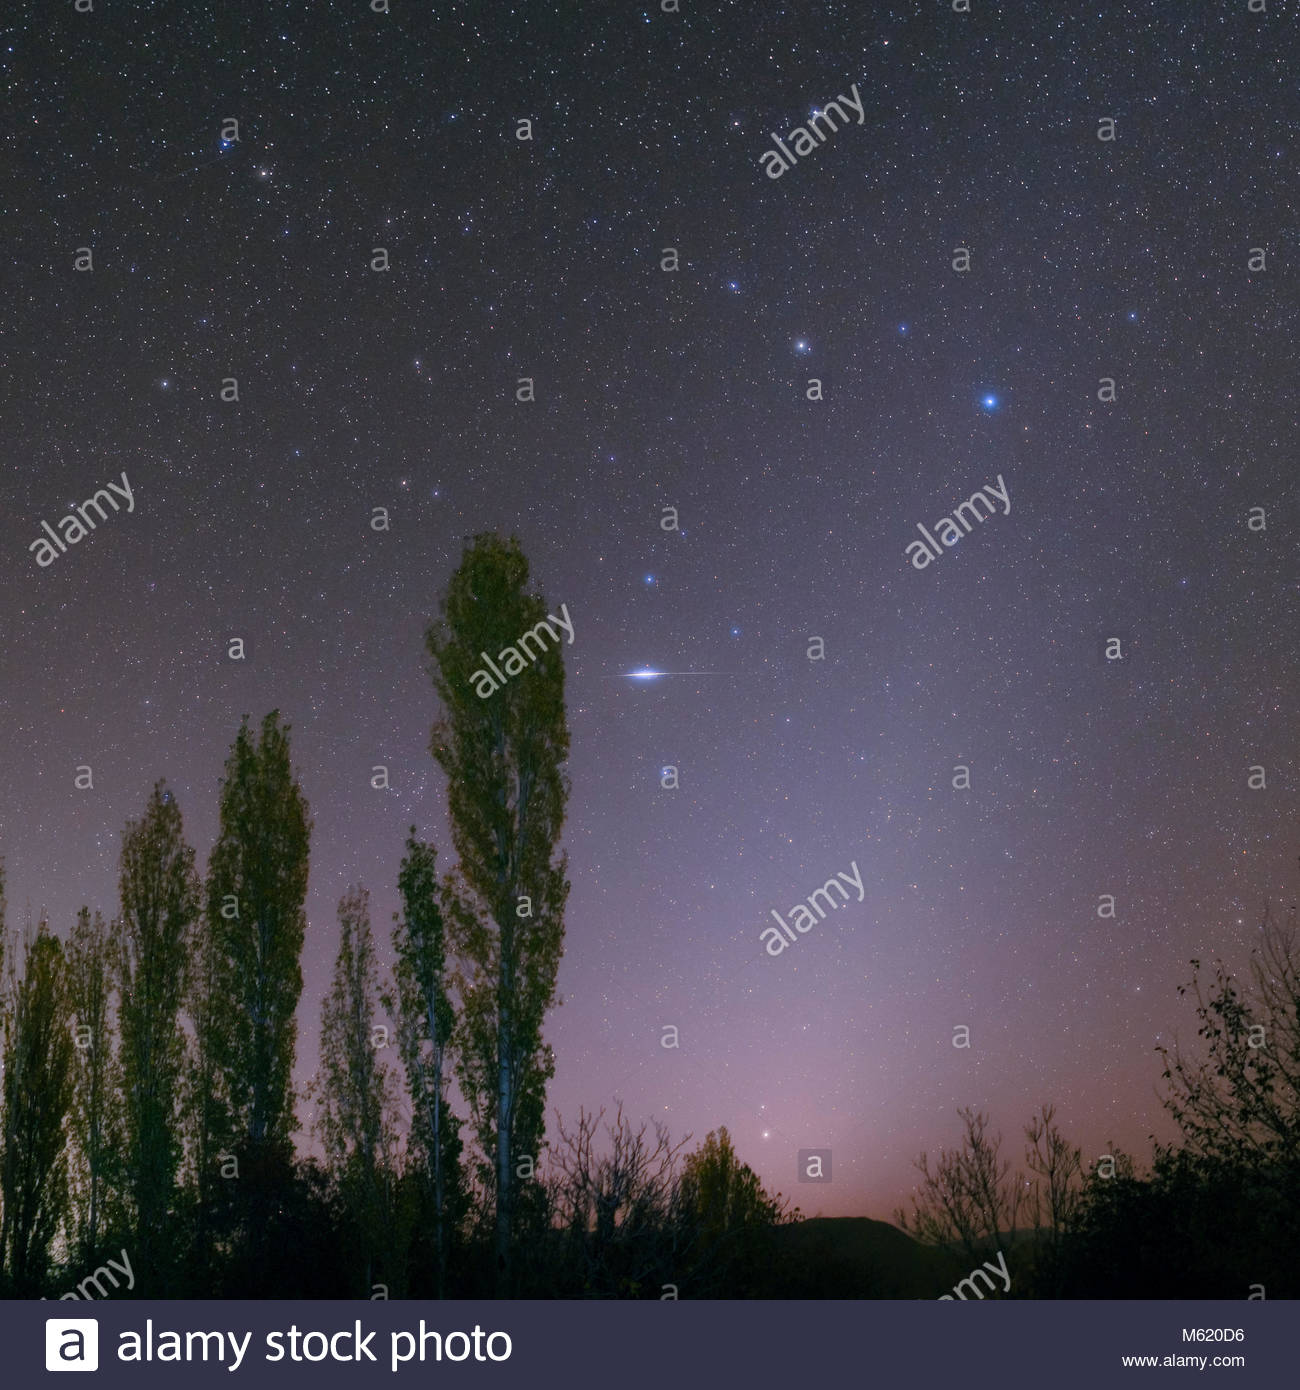 Constellation Leo and the zodiacal light in early morning sky with a bright Iridium satellite. Stock Photo